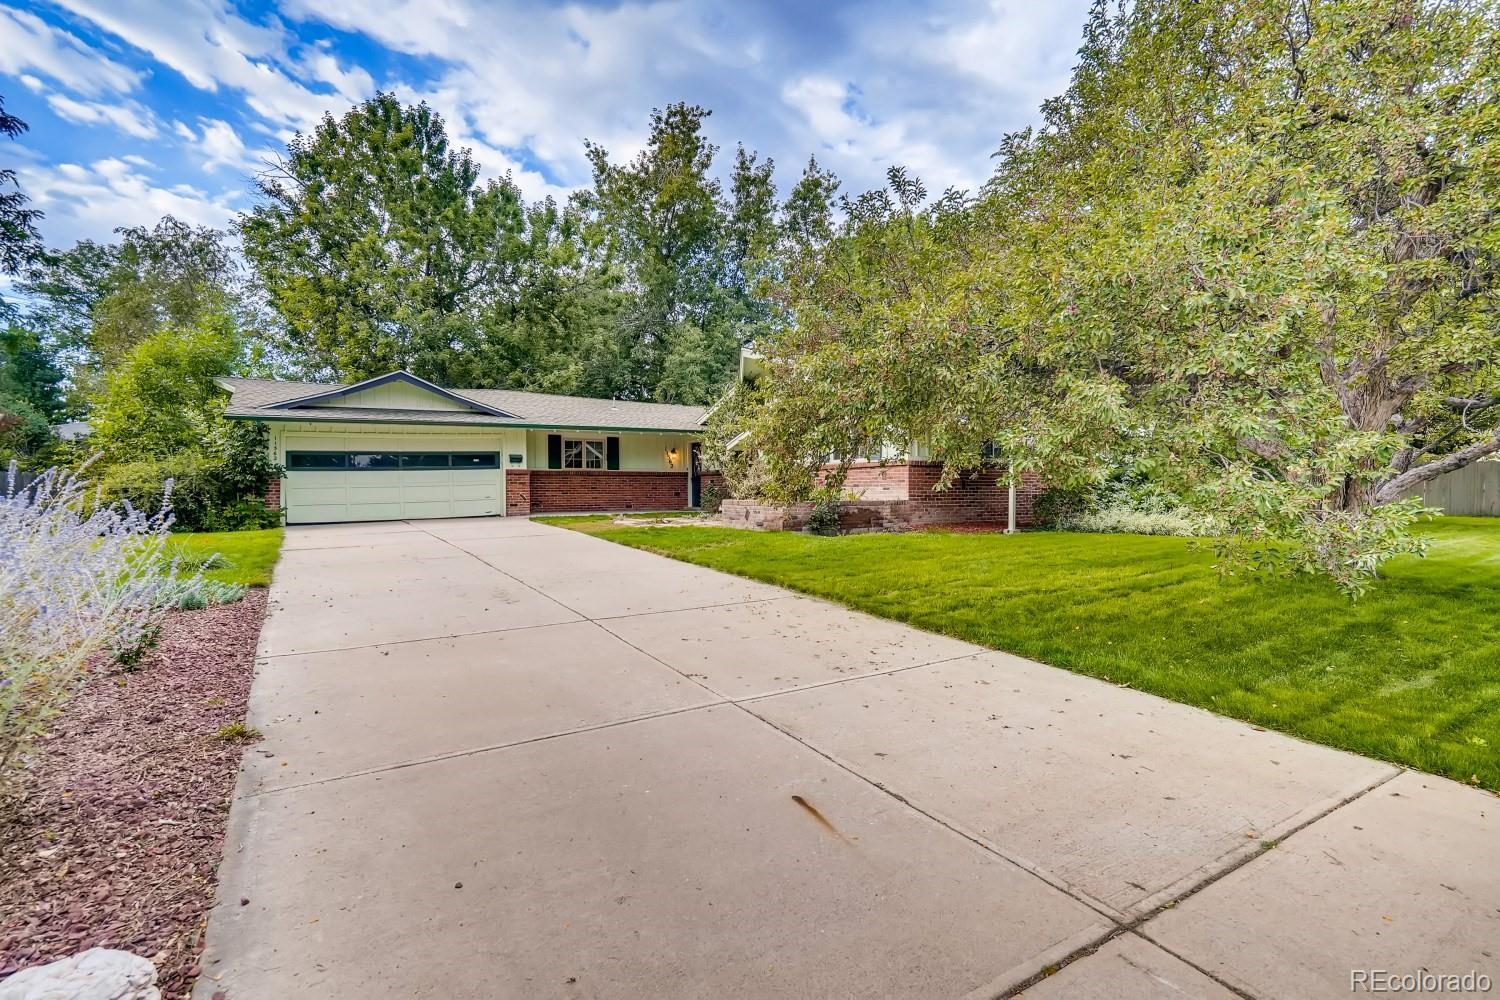 11562 W 29th Place, Lakewood, CO 80215 - #: 4294627